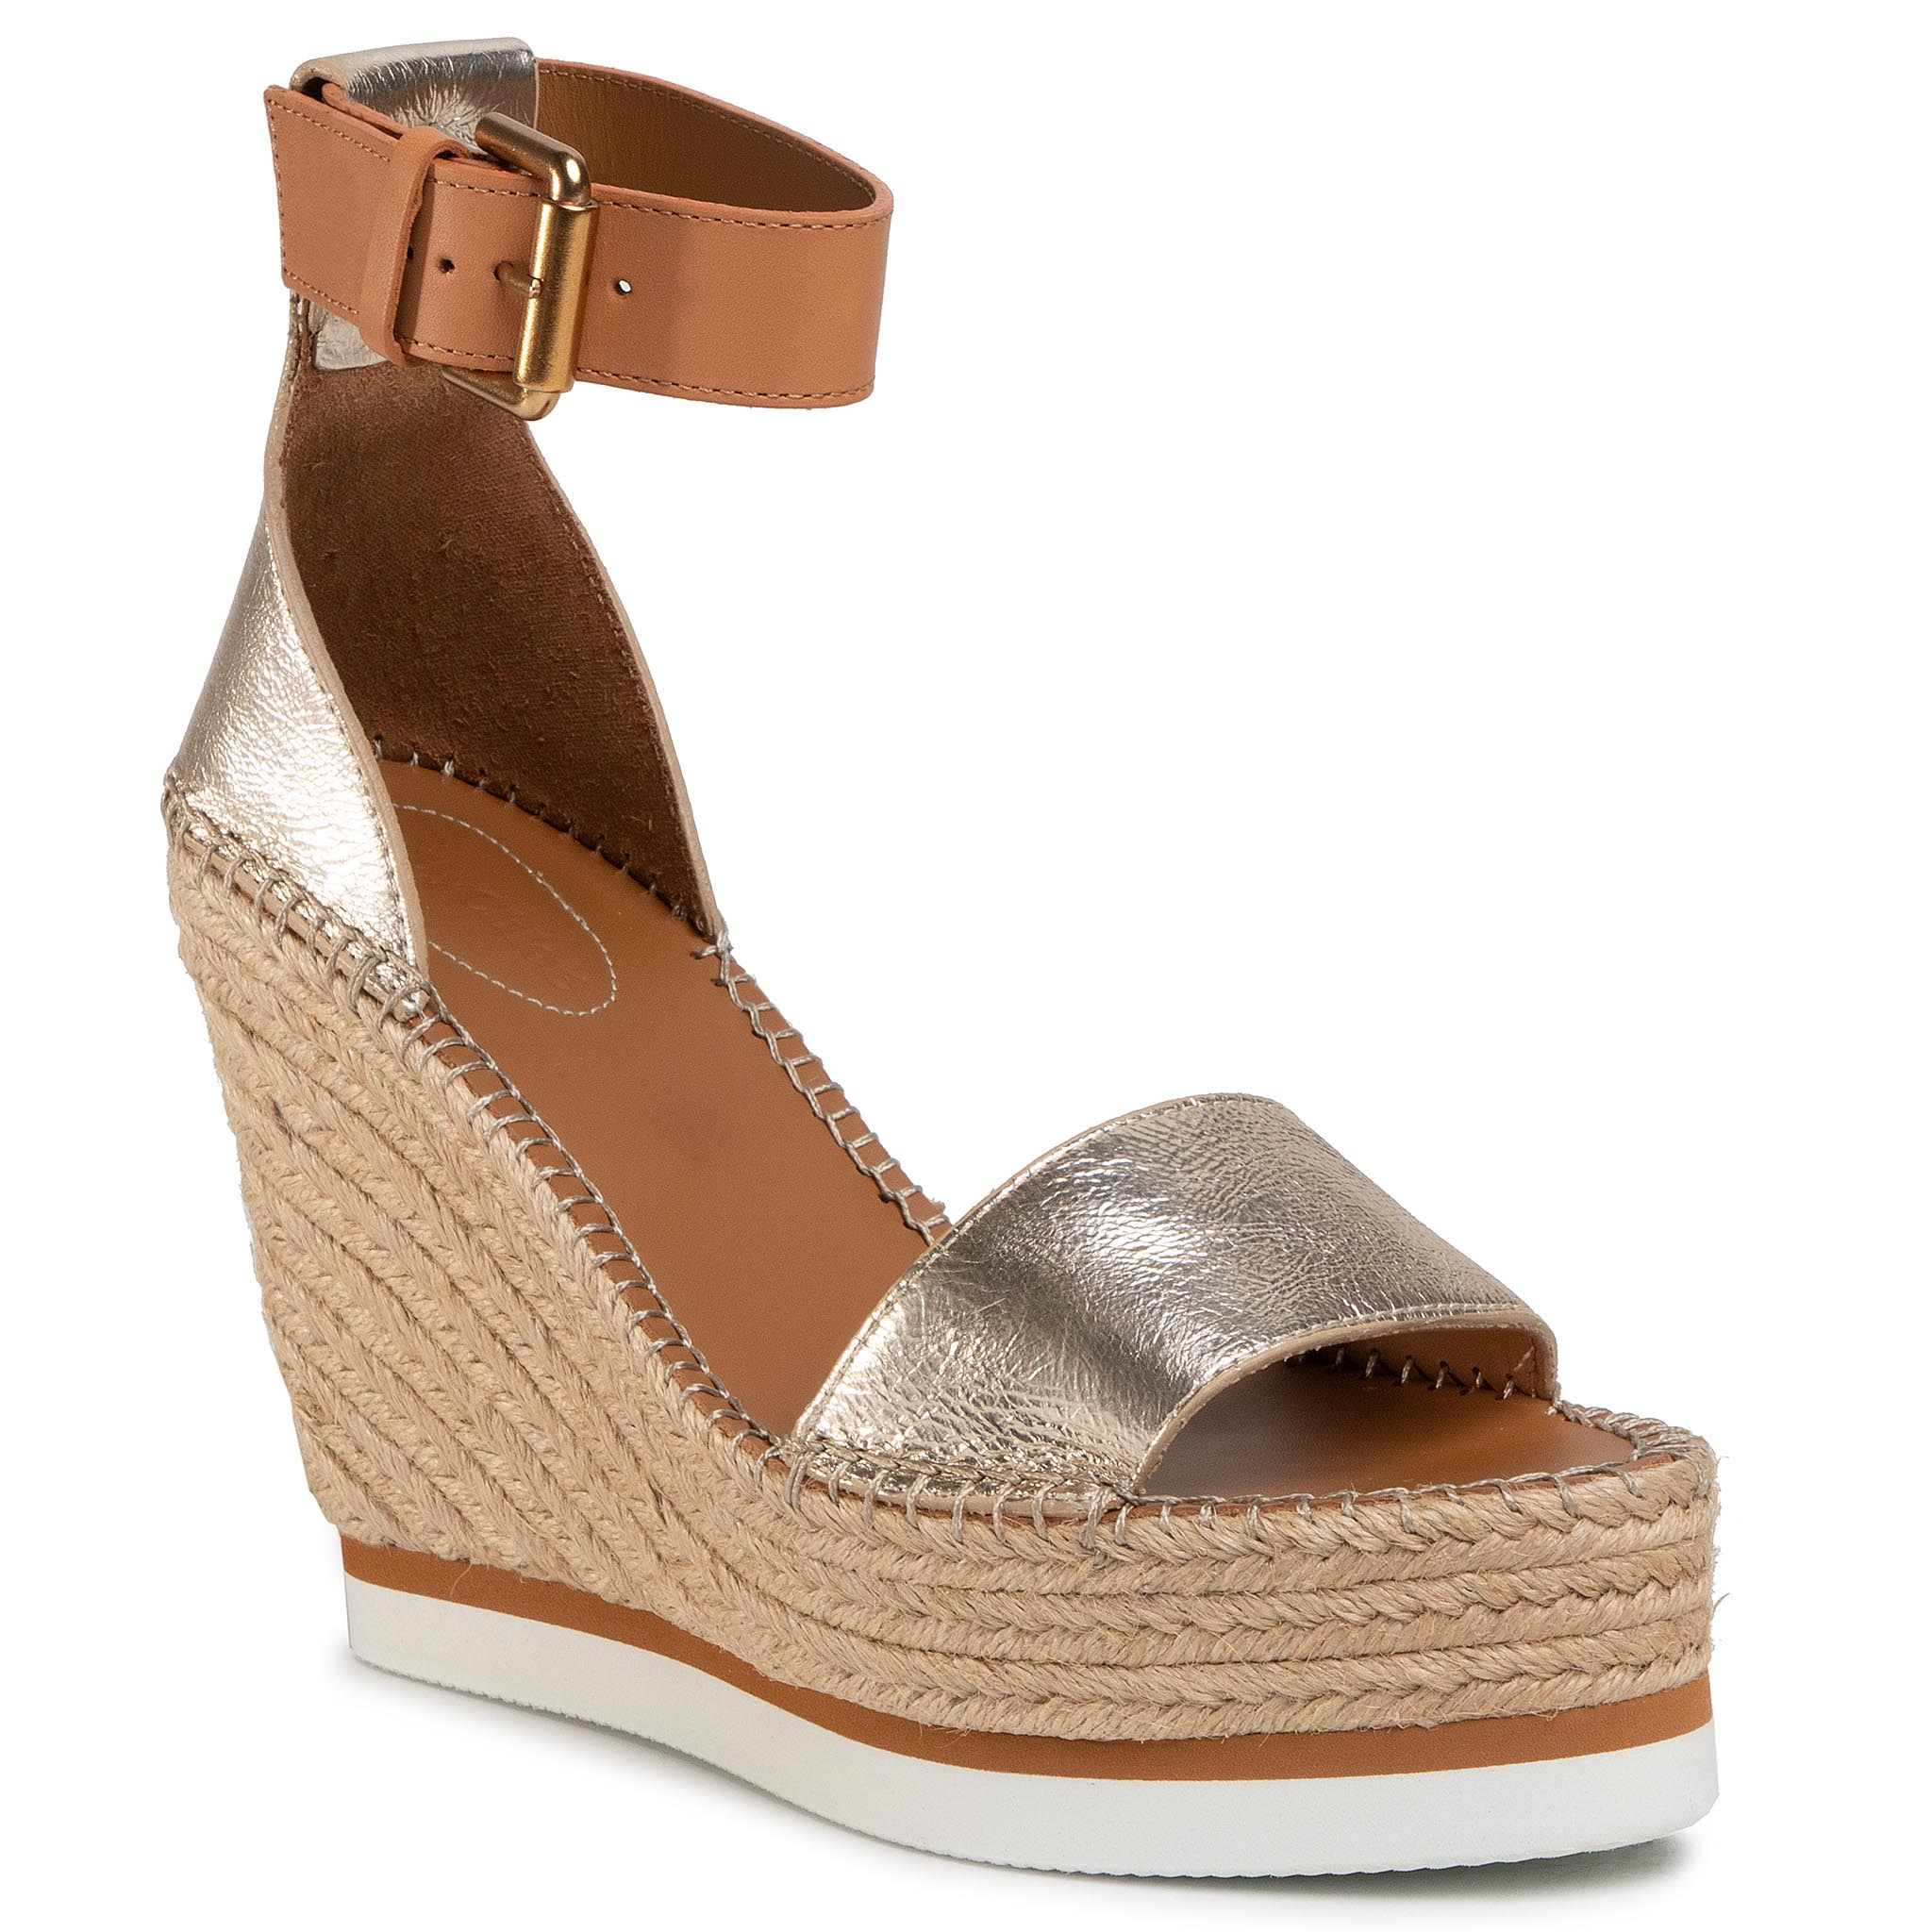 Image of Espadrillas SEE BY CHLOÉ - SB26152 Light Gold 533